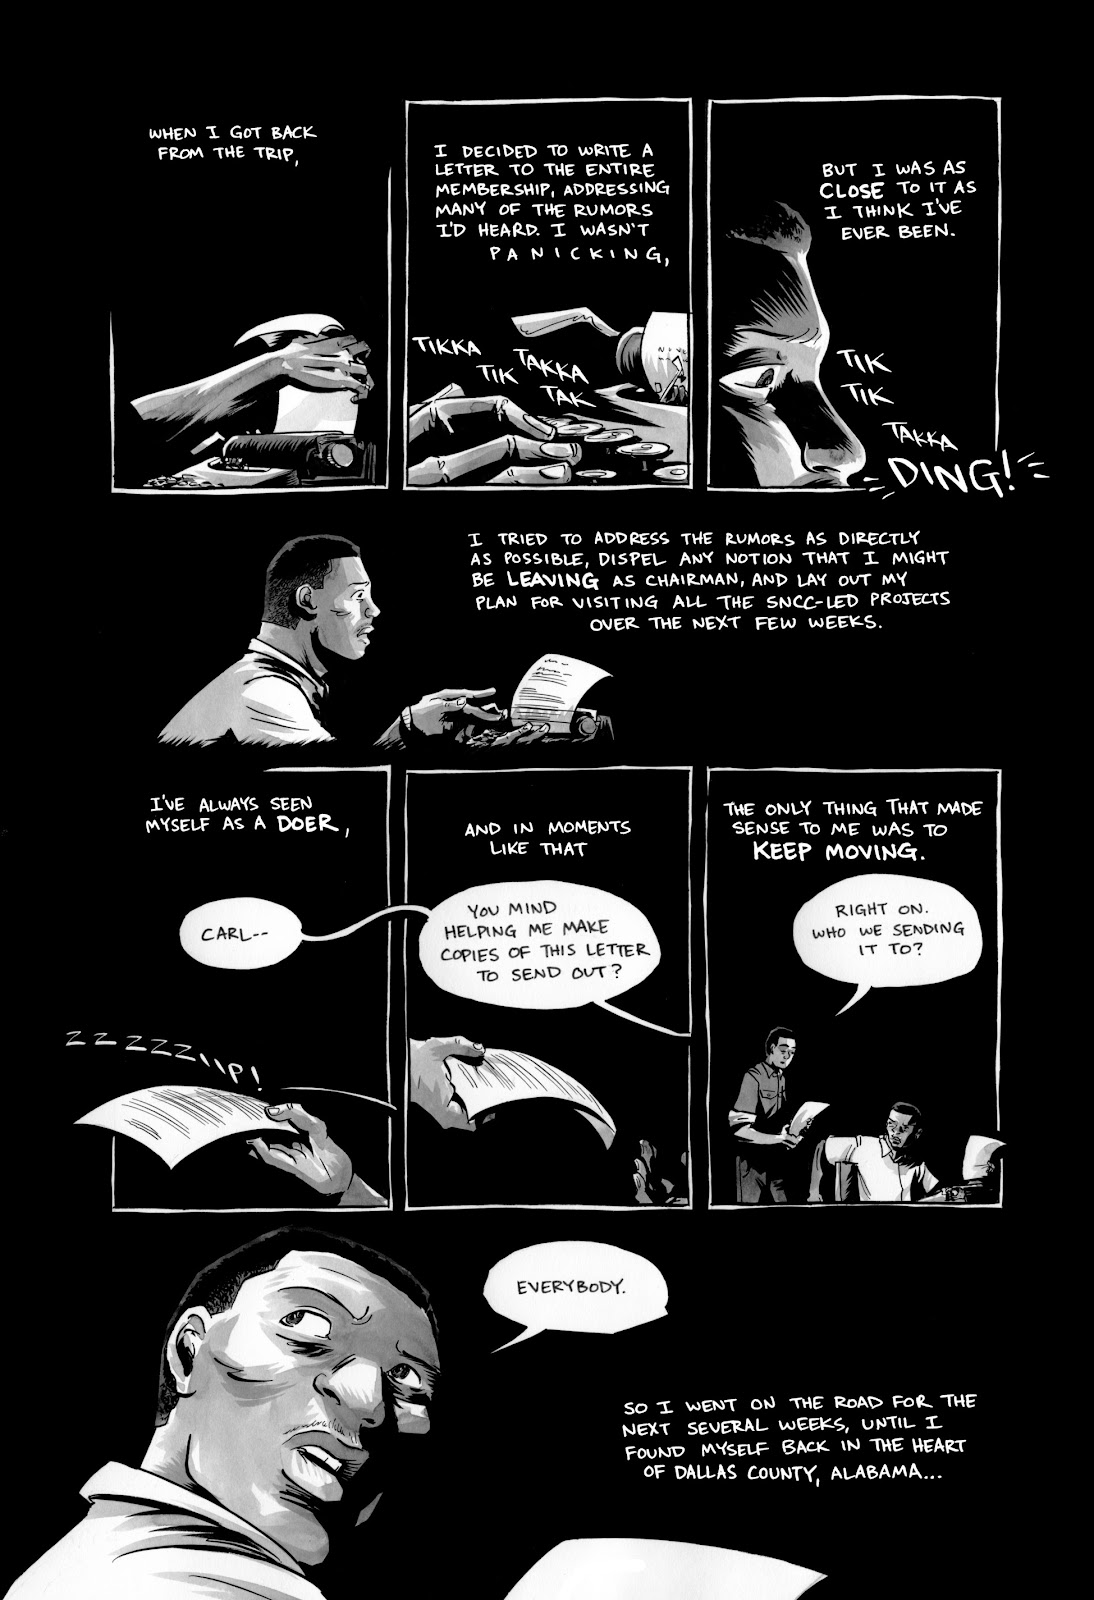 March 3 Page 139